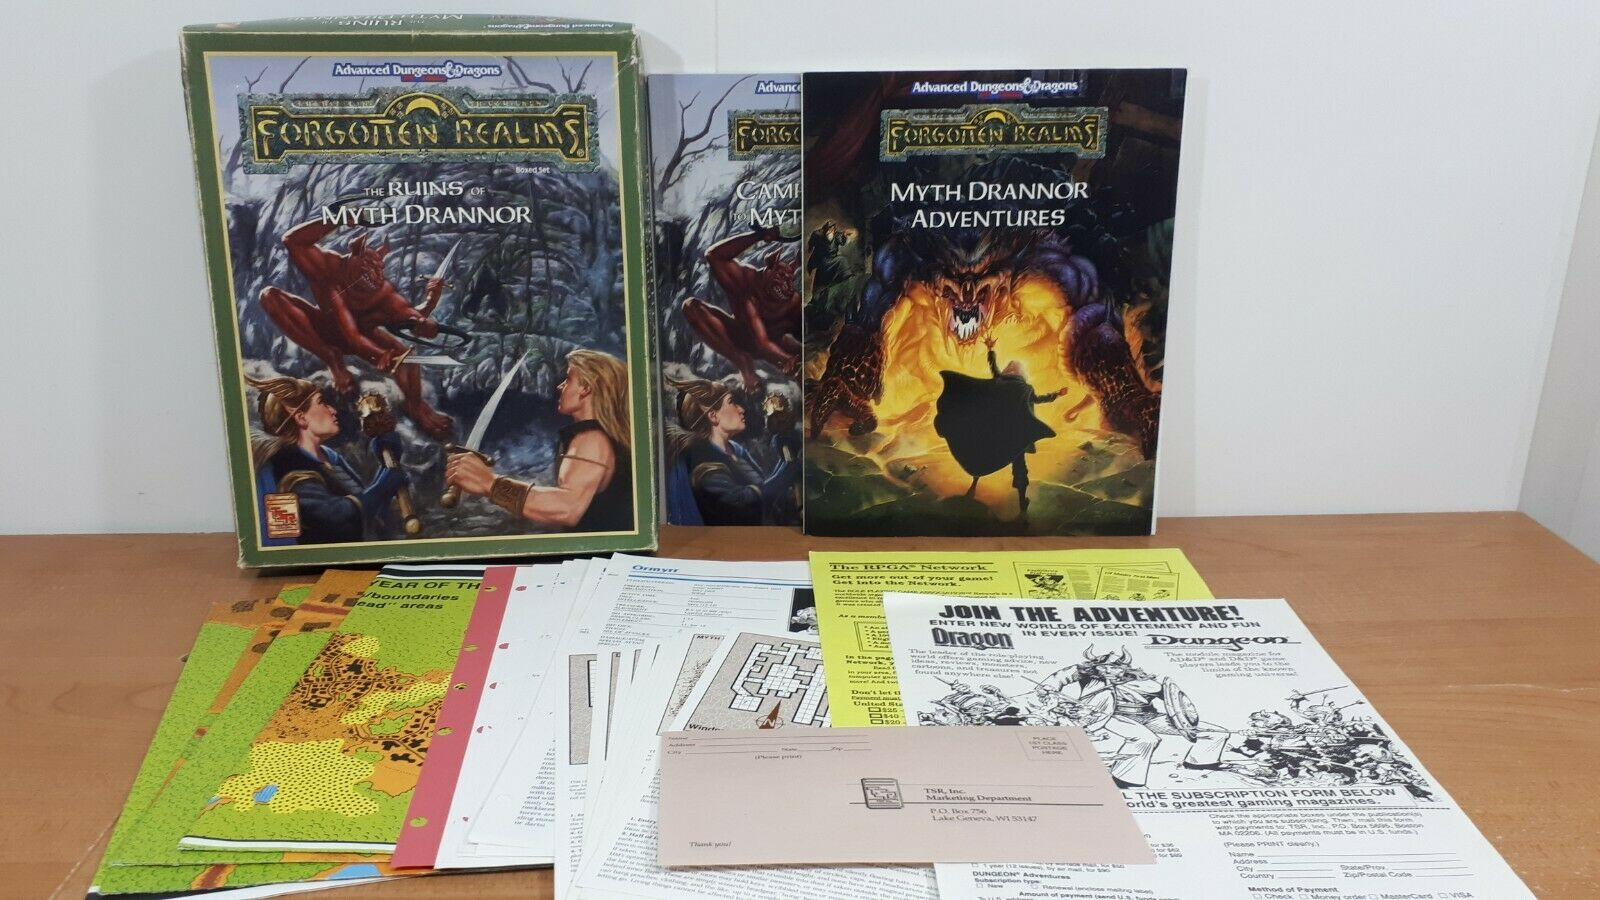 TSR Dungeons & Dragons D&D Forgotten Realms Ruins of Myth Drannor, The Box